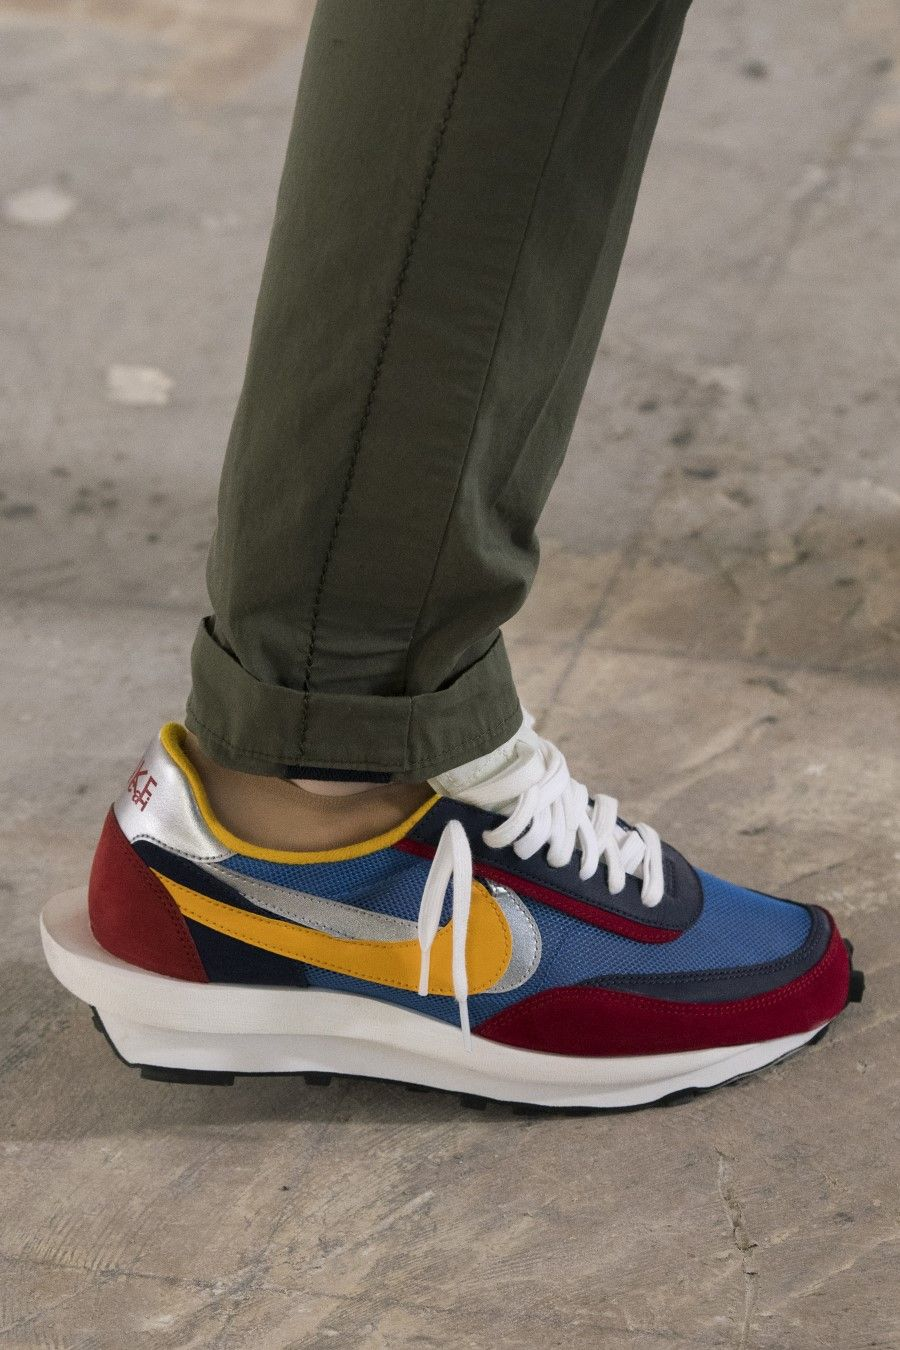 sports shoes b0938 c1765 Sacai x Nike Printemps Été 2019